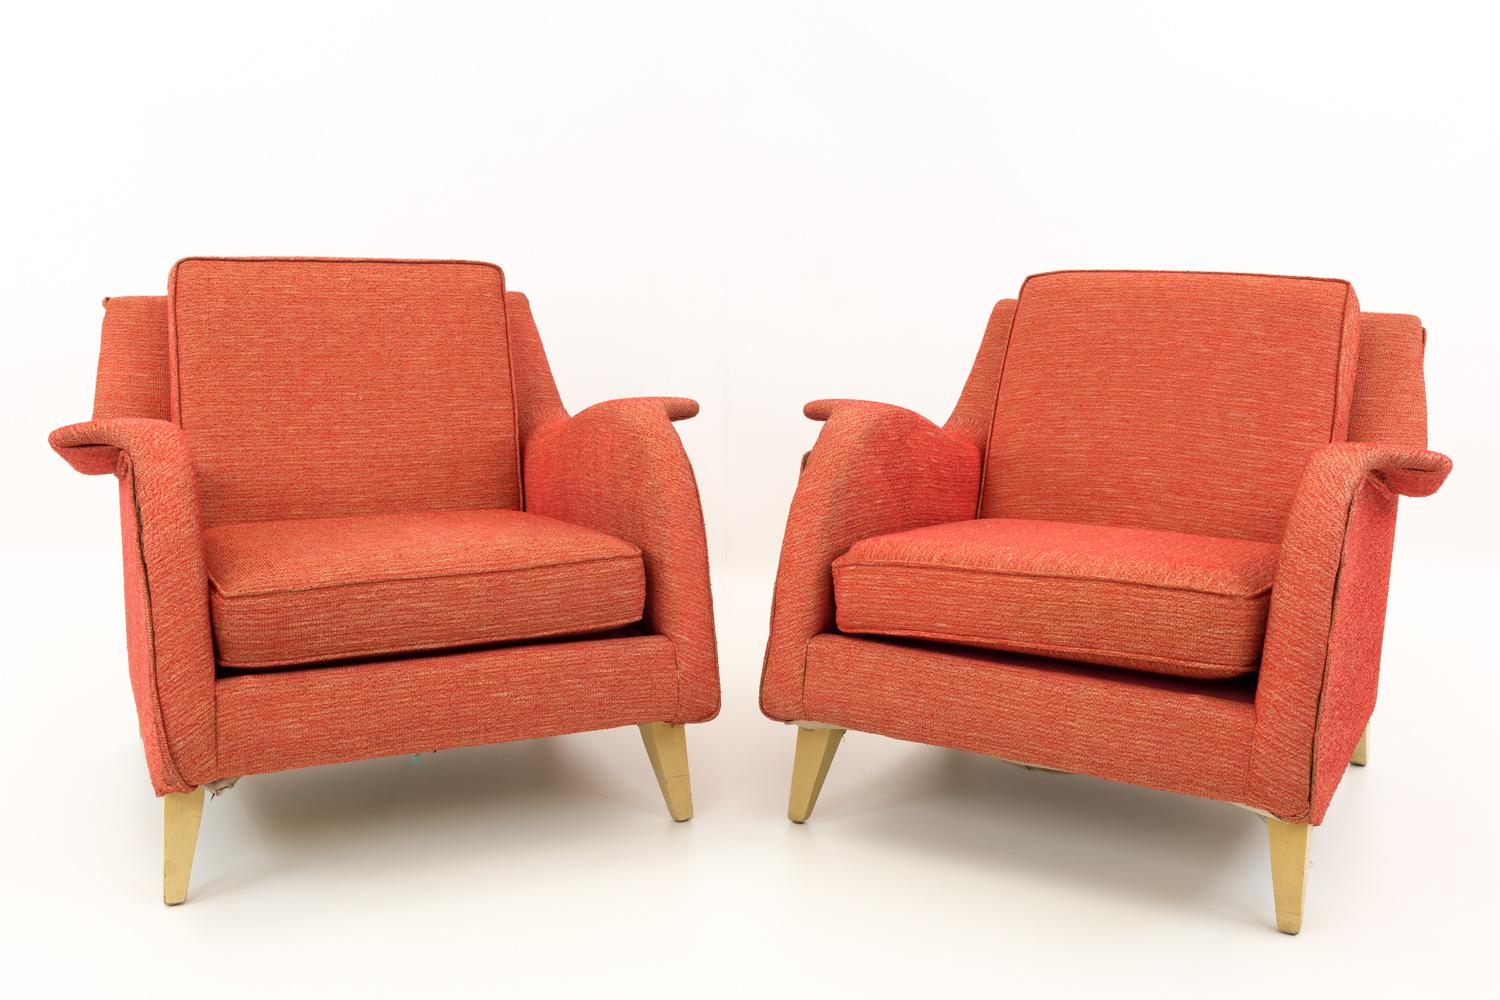 red lounge chair hydraulic stool vintage mid century modern chairs a pair chairish arms have great unique